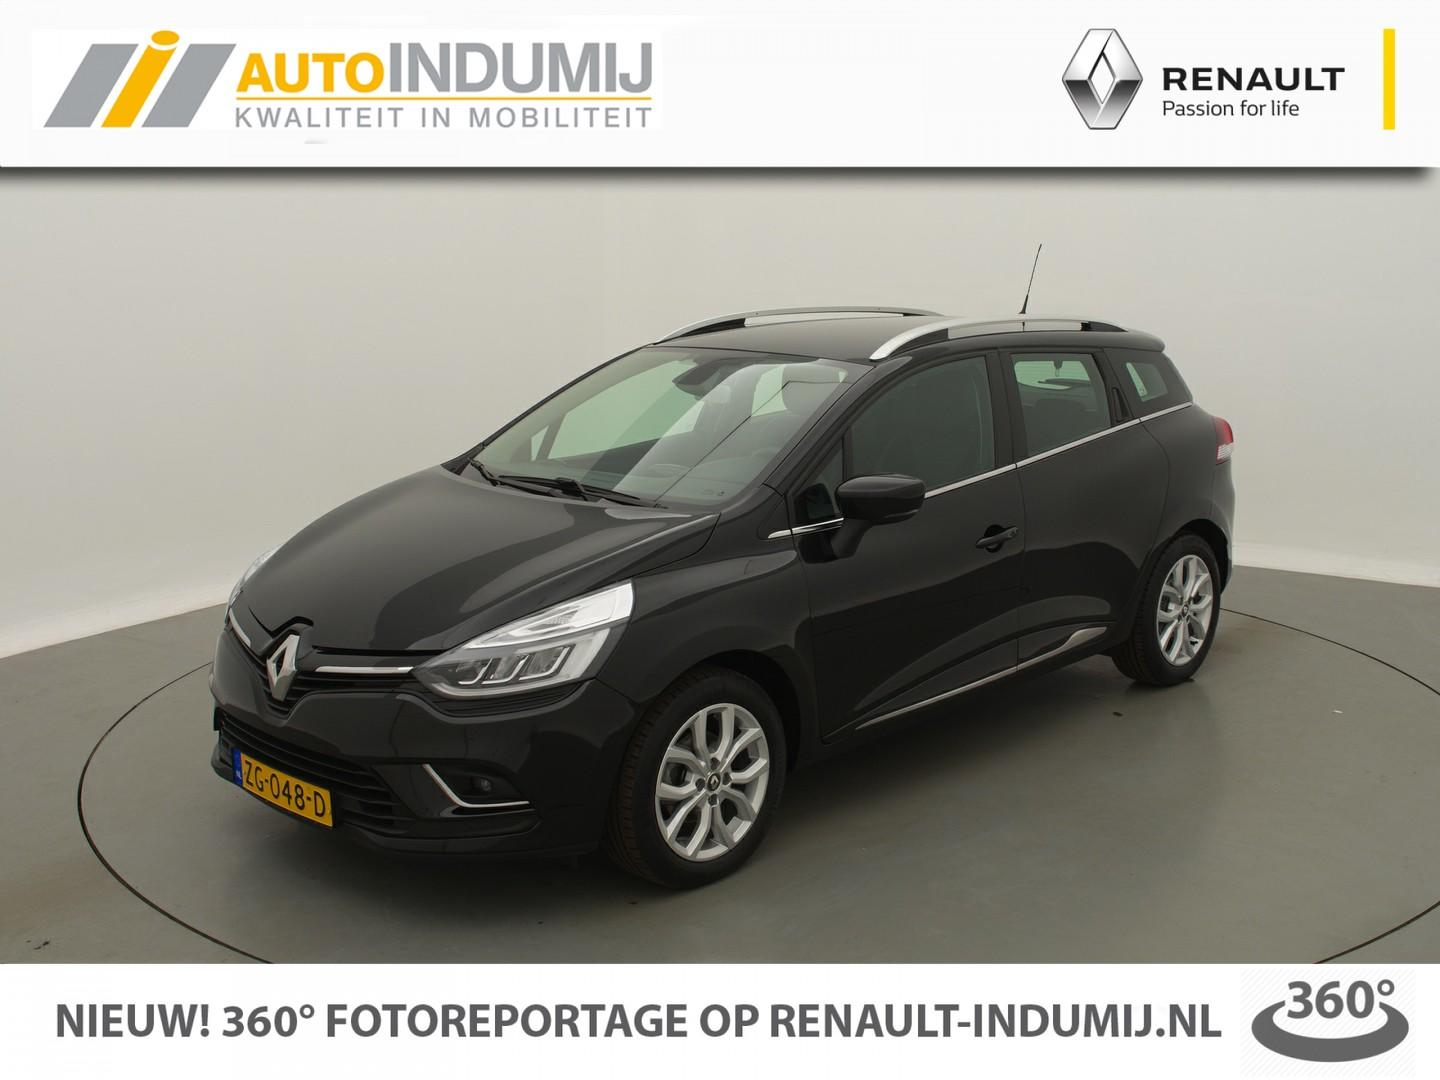 Renault Clio Estate tce 90 intens // full led / navi / climate control